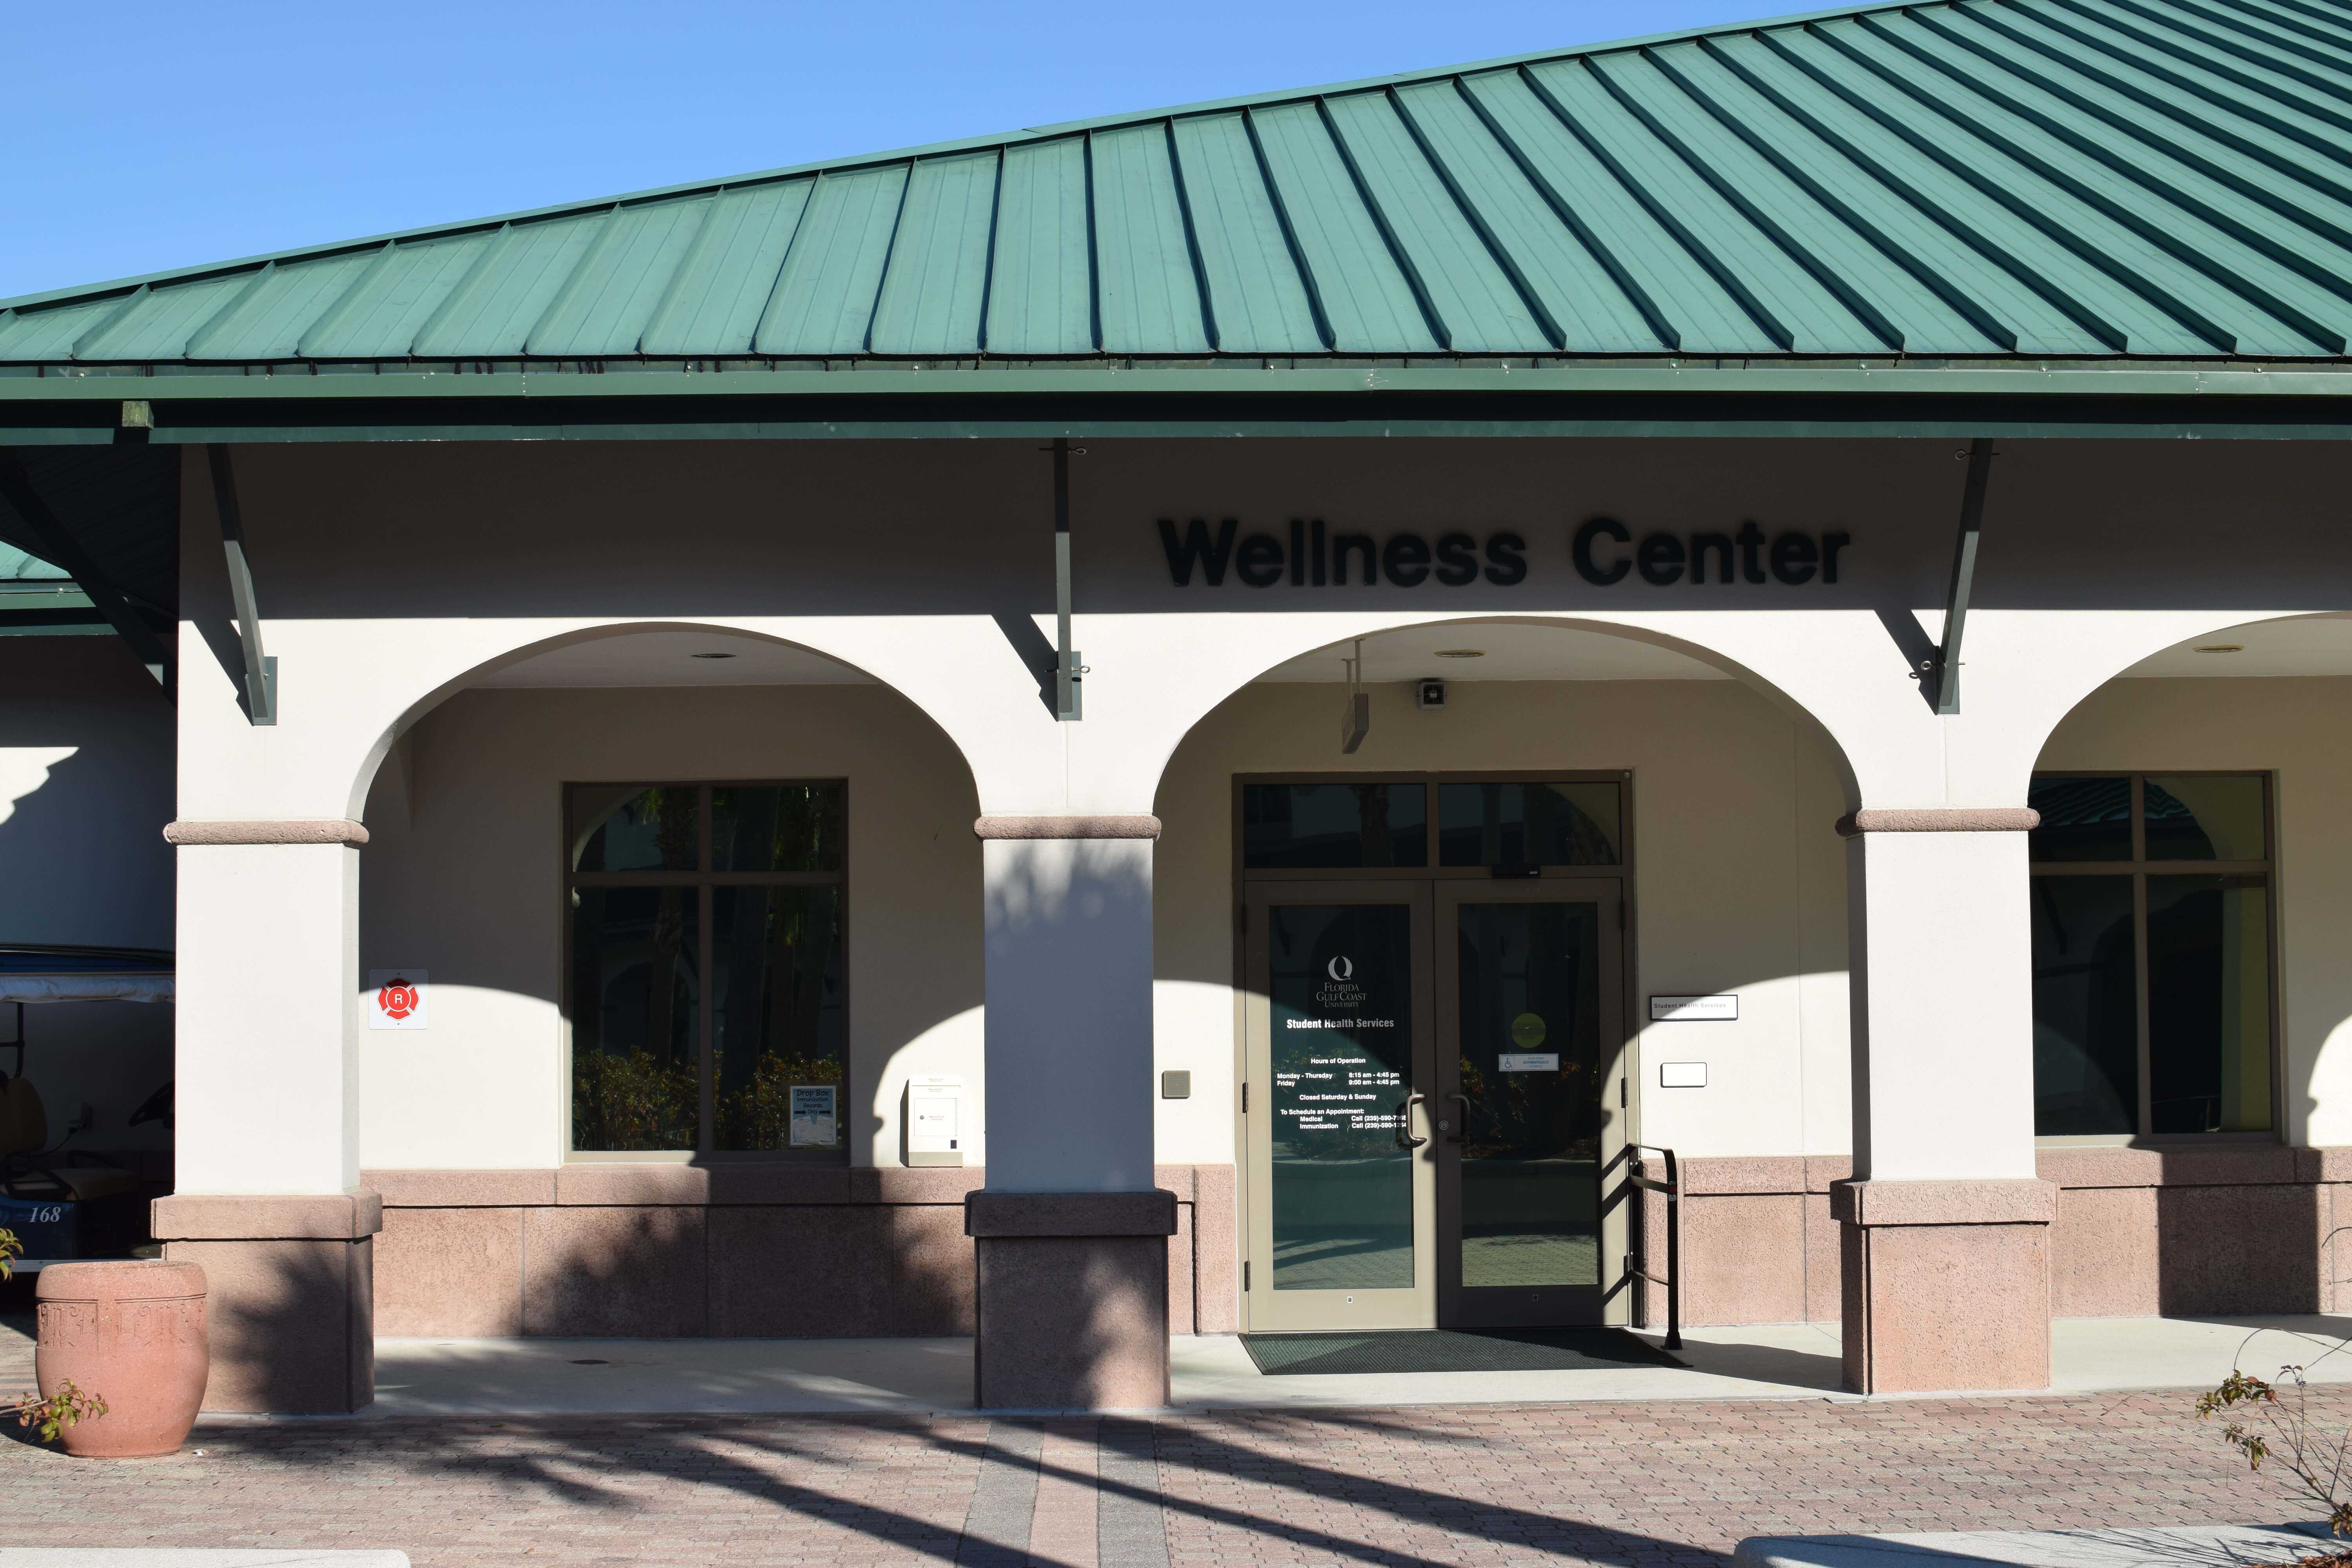 Health clinic, Adaptive Services, Prevention & Wellness  will move to different buildings in May